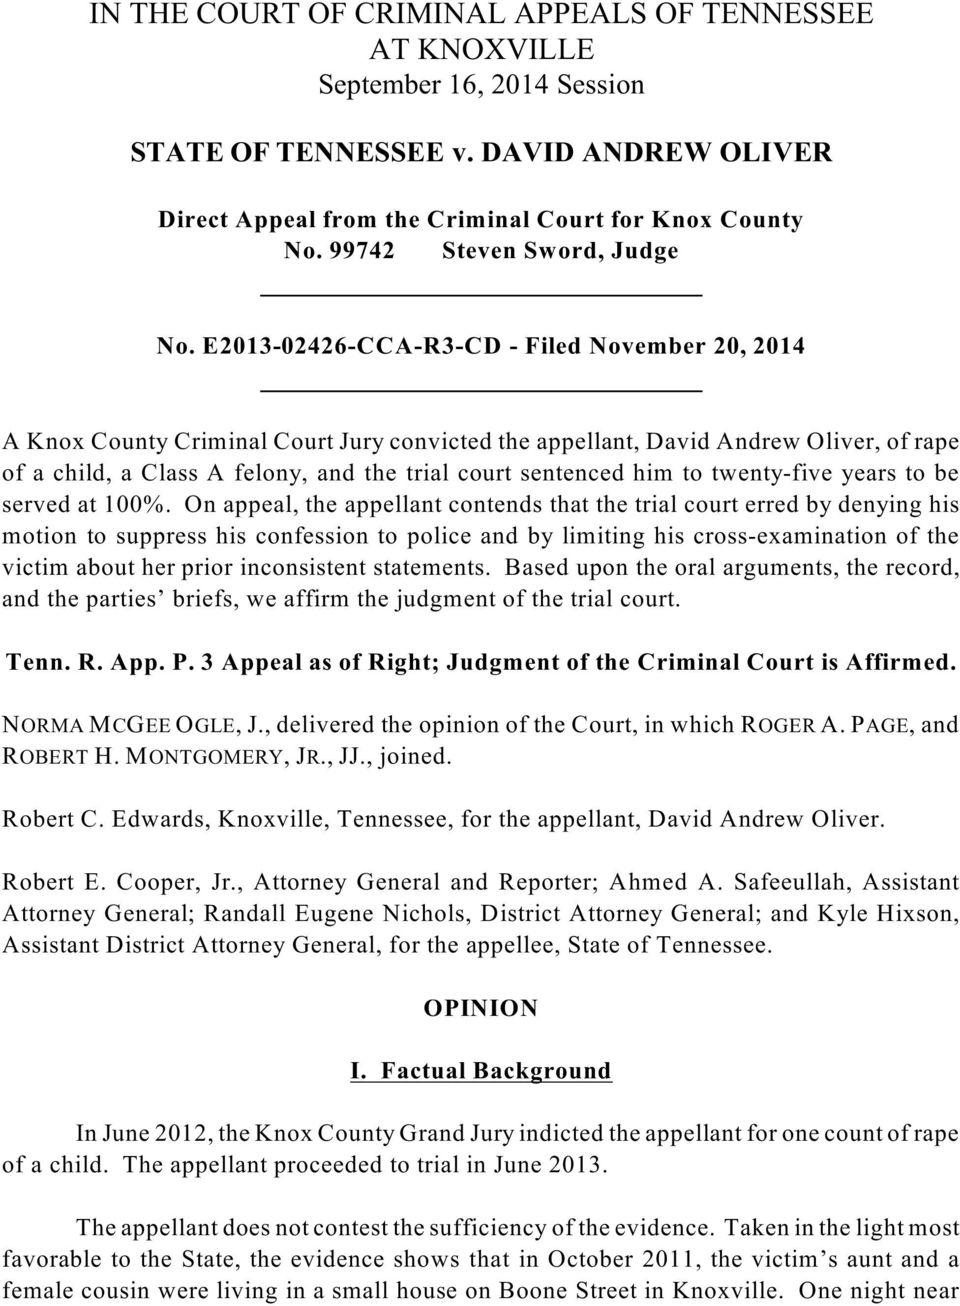 E2013-02426-CCA-R3-CD - Filed November 20, 2014 A Knox County Criminal Court Jury convicted the appellant, David Andrew Oliver, of rape of a child, a Class A felony, and the trial court sentenced him